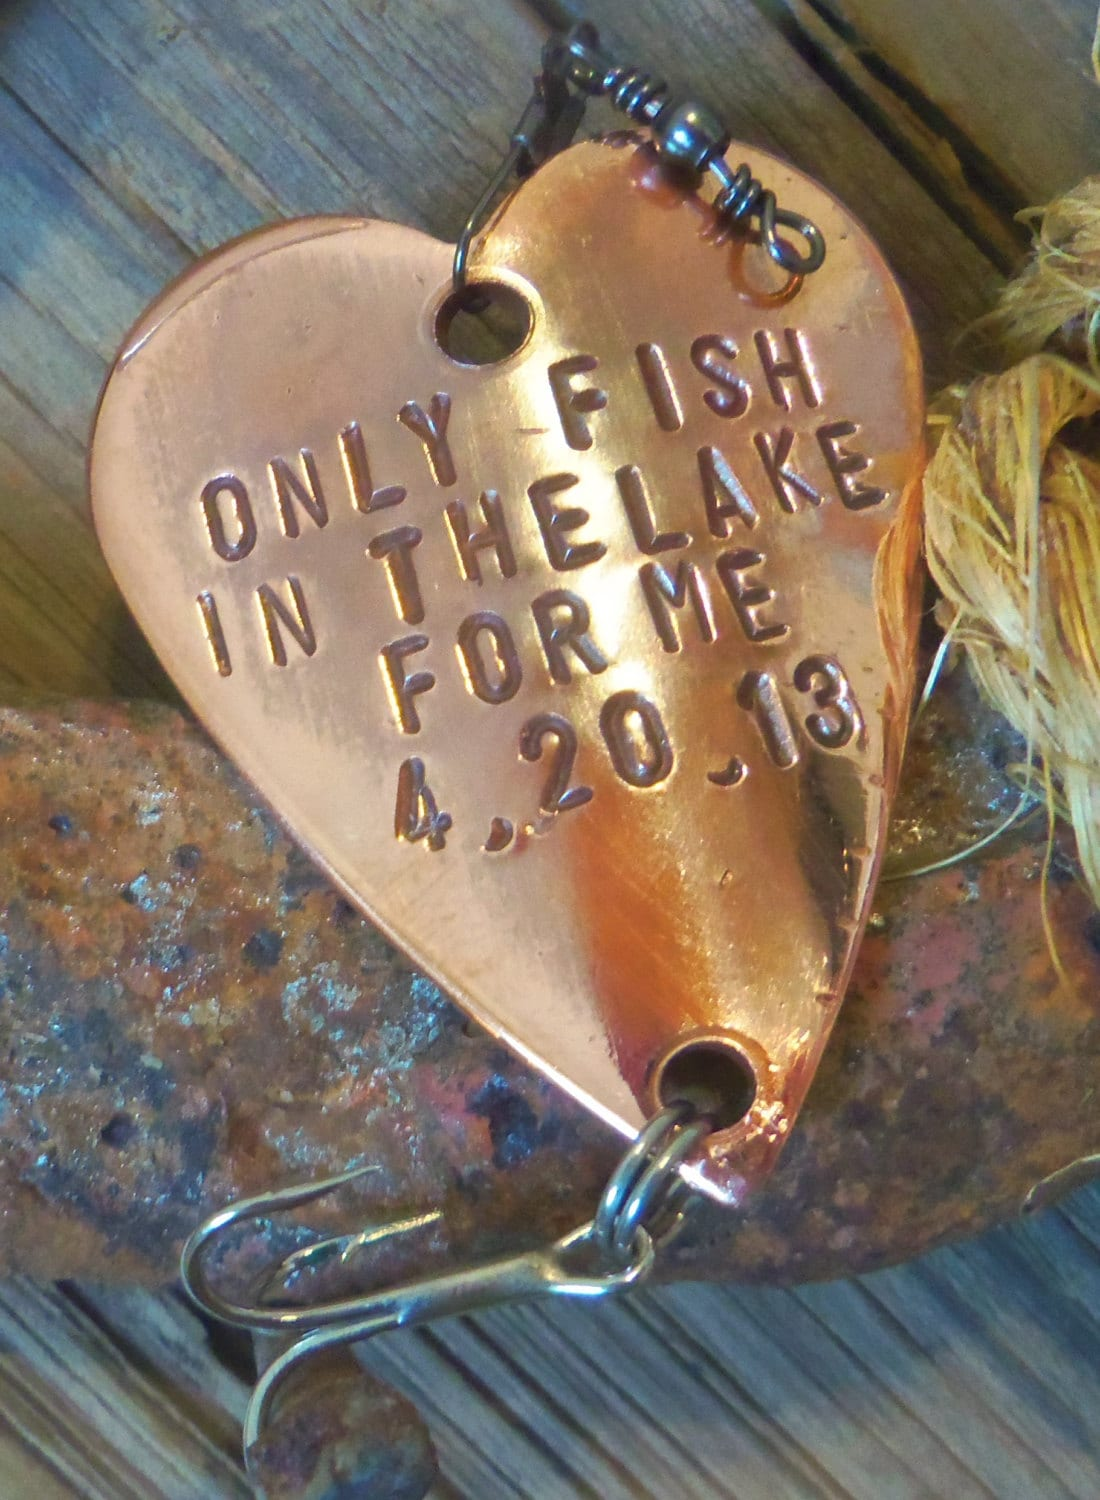 Perfect Wedding Anniversary Gift For Husband: 50th Anniversary Gift For Fisherman Fishing Gift For Husband